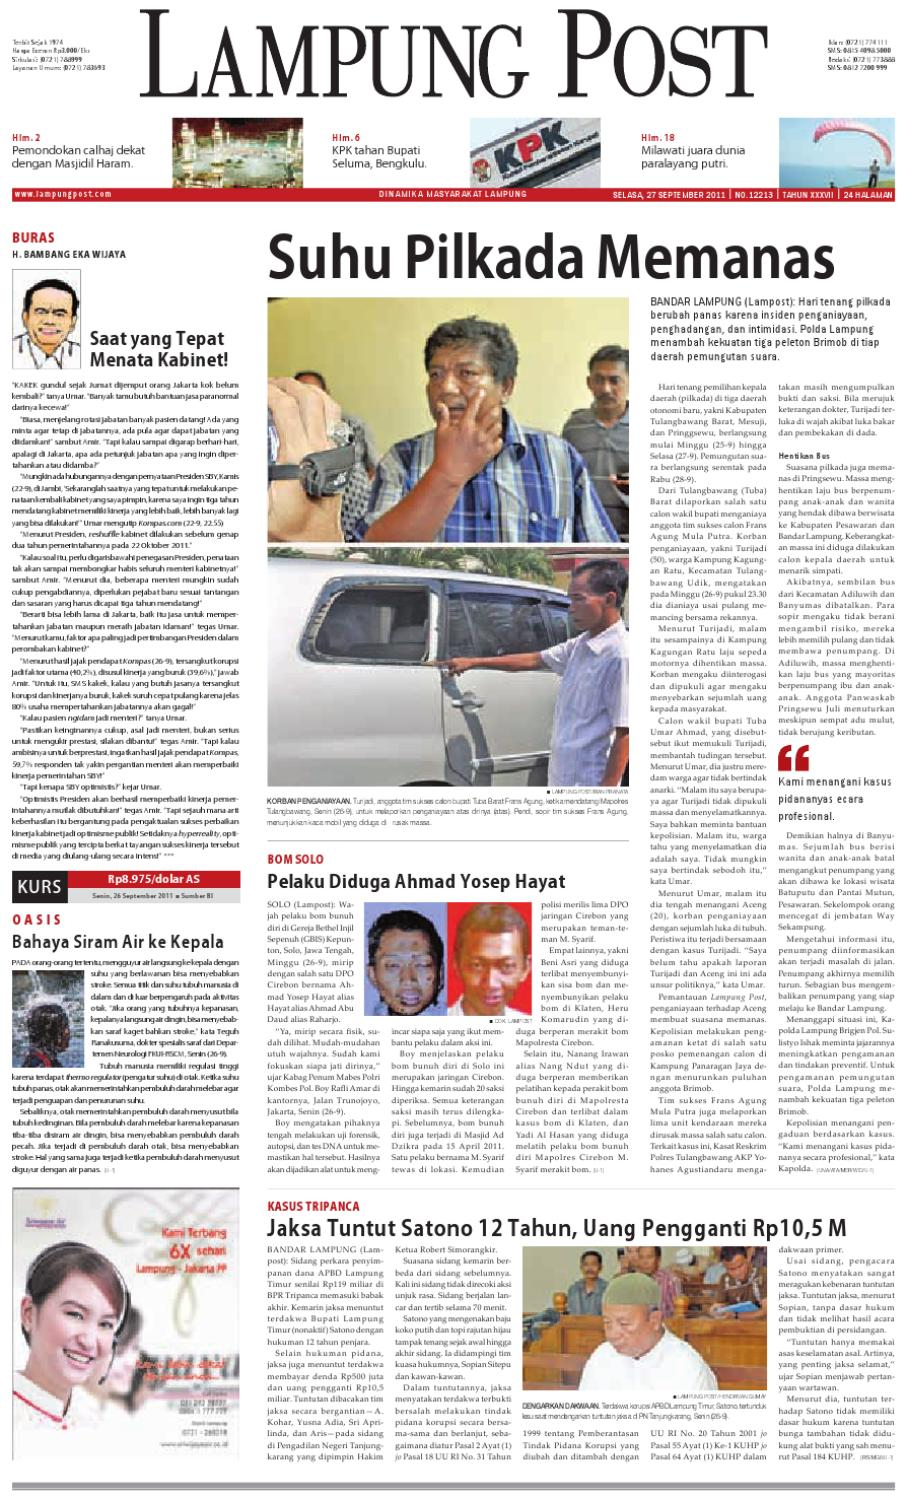 lampost edisi 27 september 2011 by Lampung Post - issuu 4041494aa0